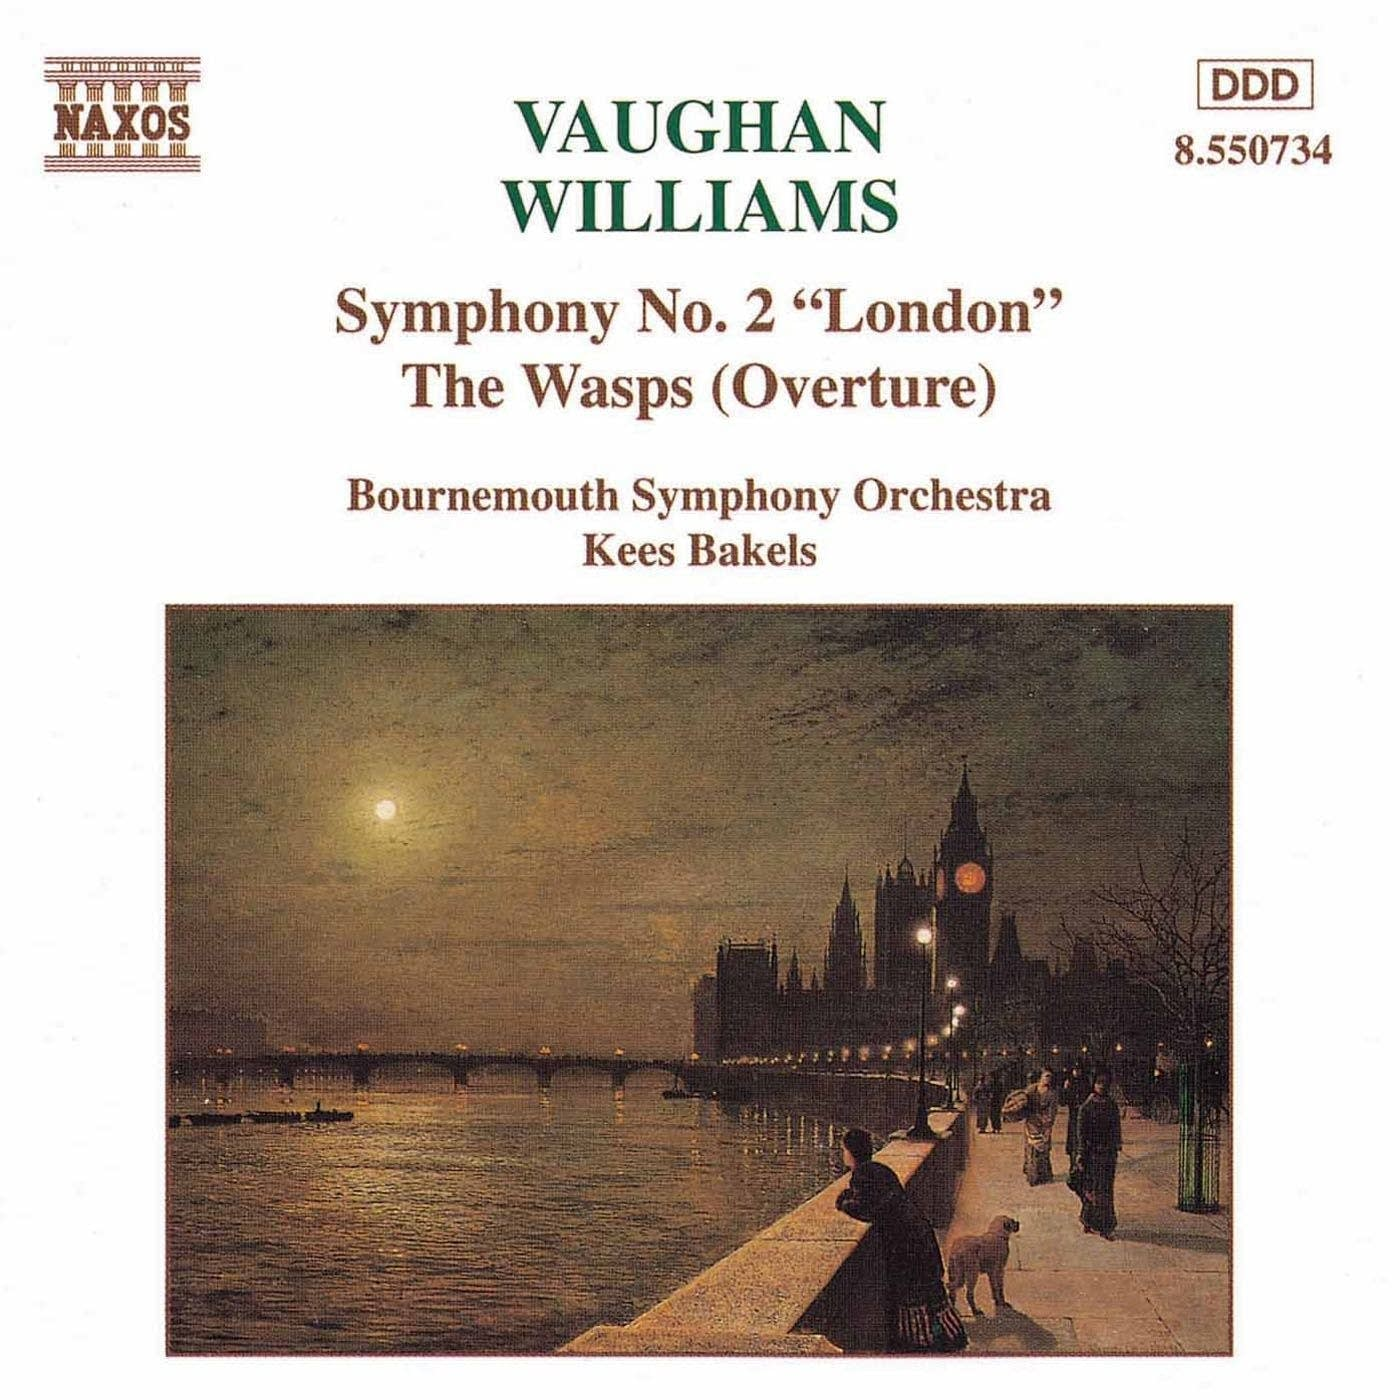 Ralph Vaughan Williams - Symphony No. 2